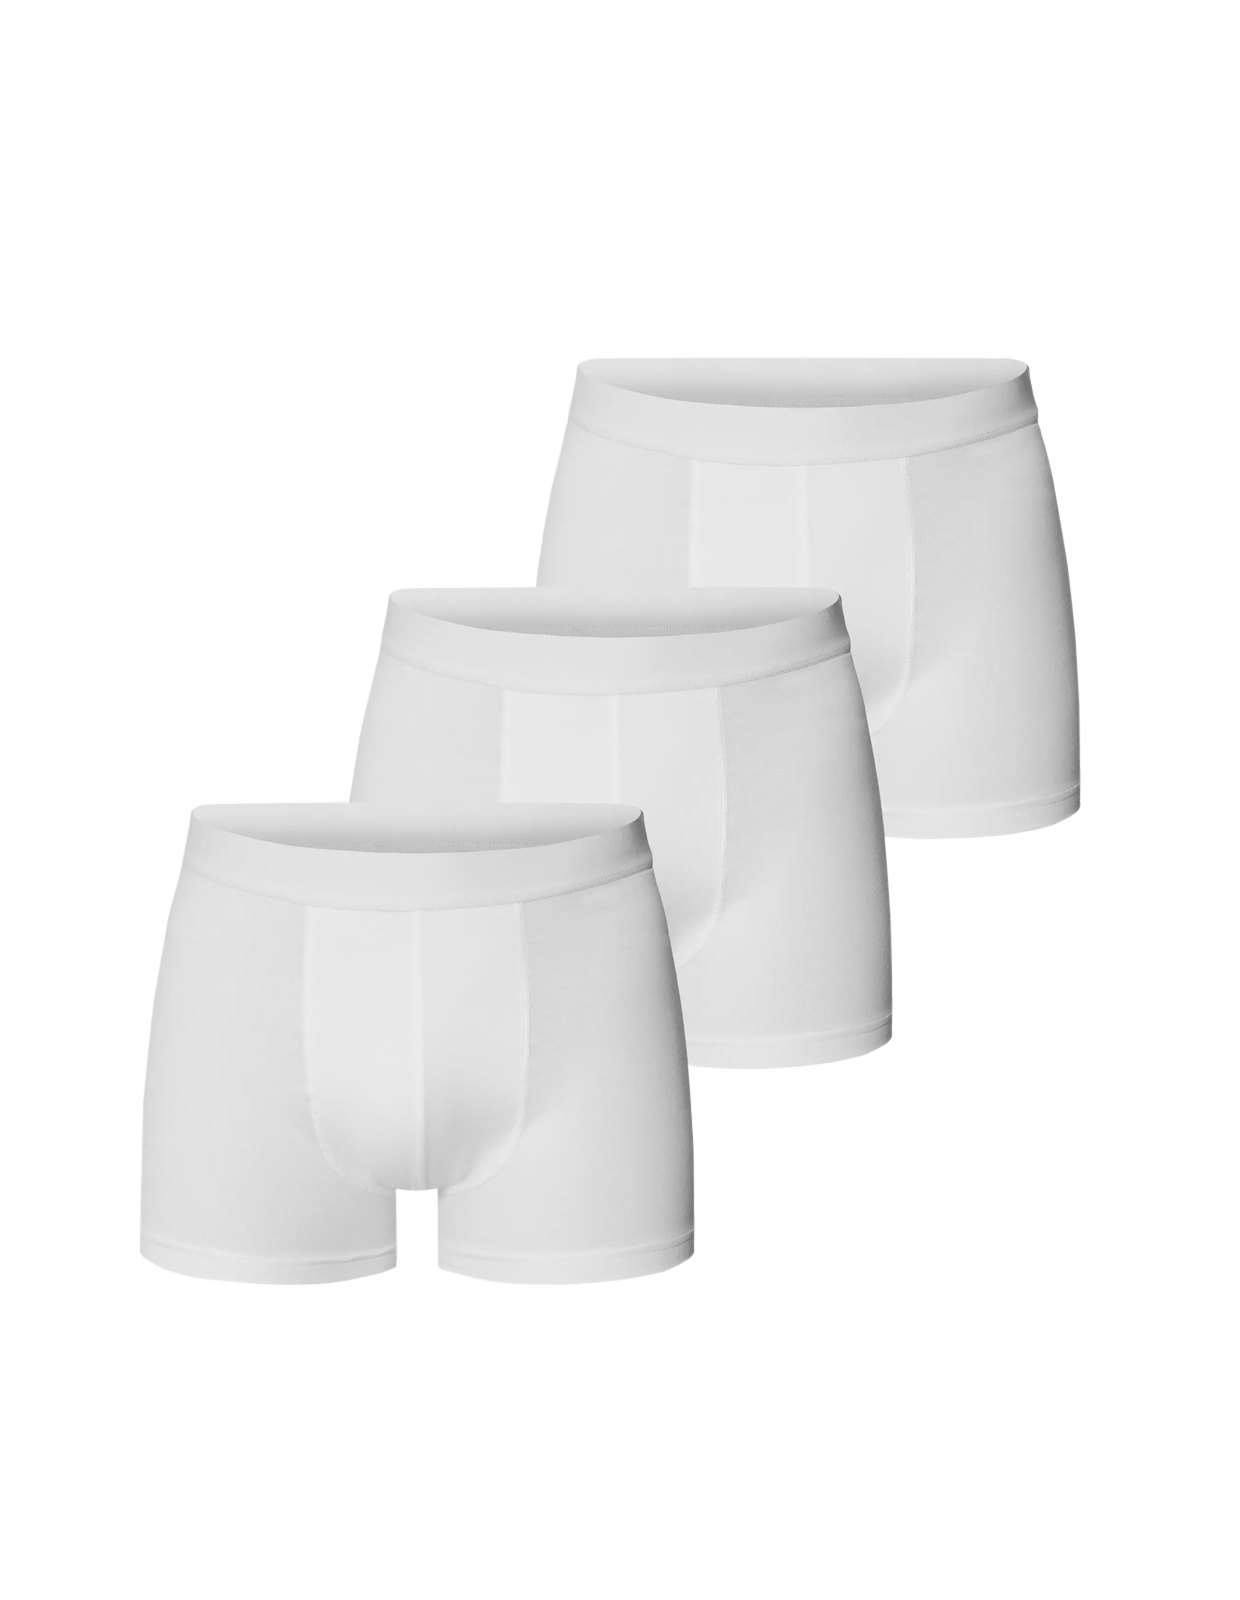 Boxer Brief 3-pack White